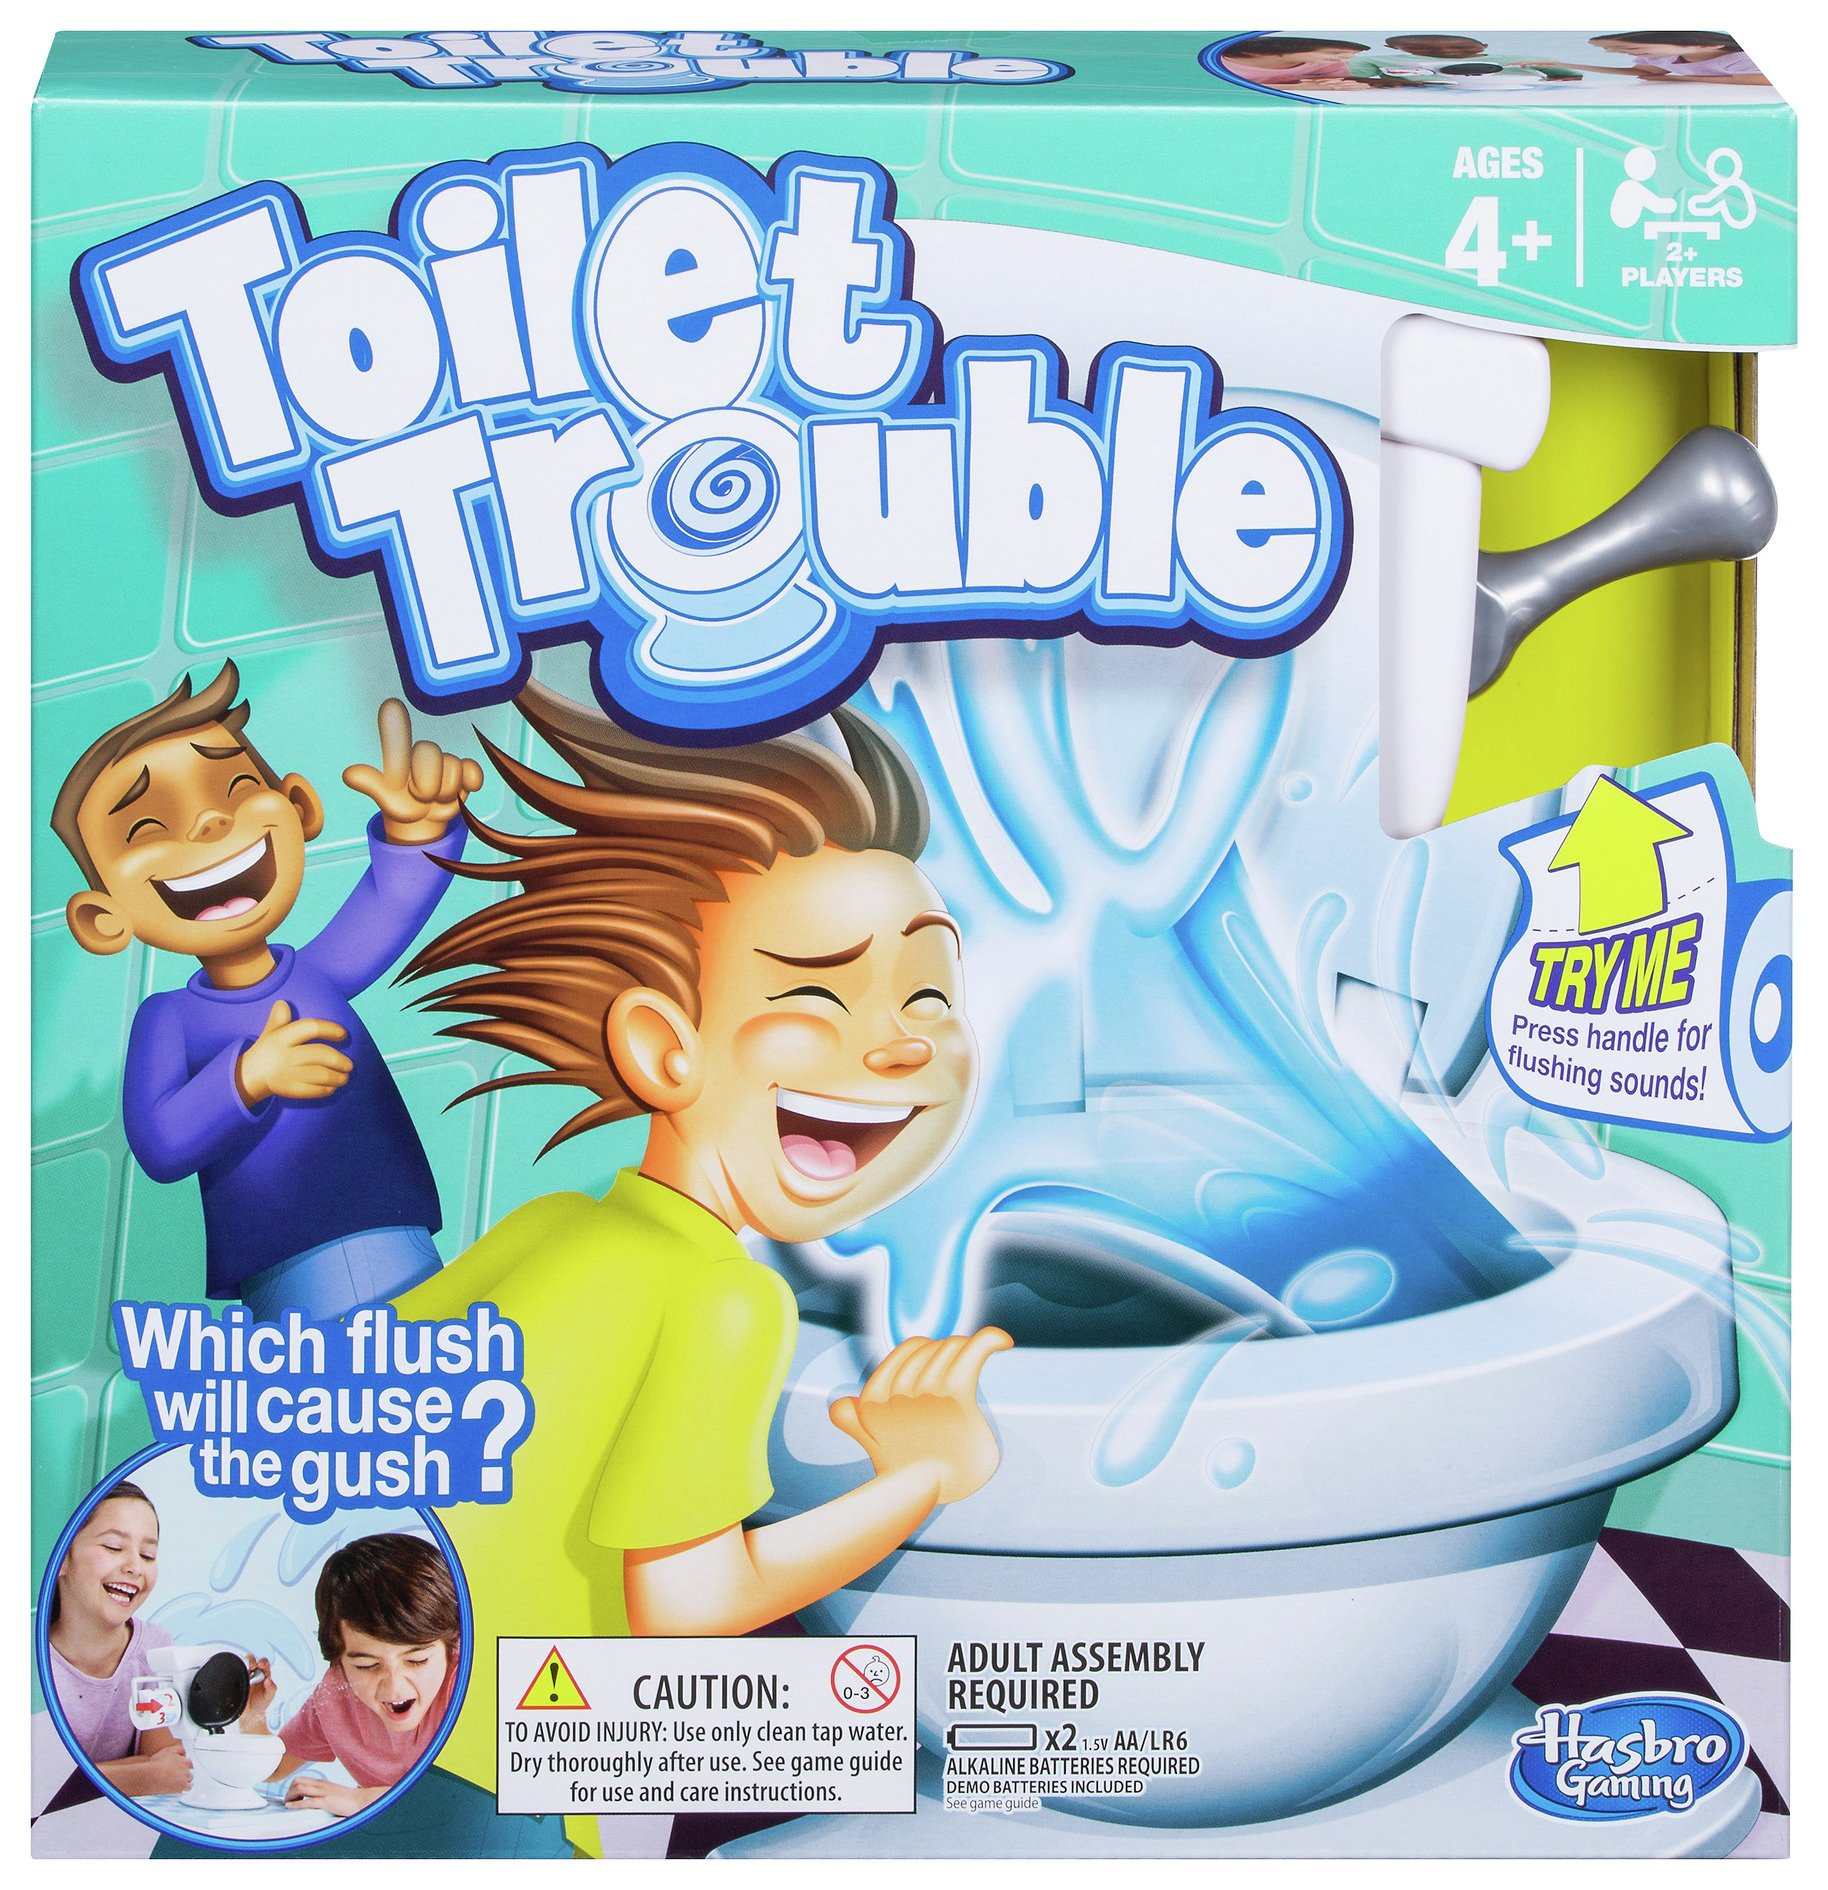 Toilet Trouble From Hasbro Gaming